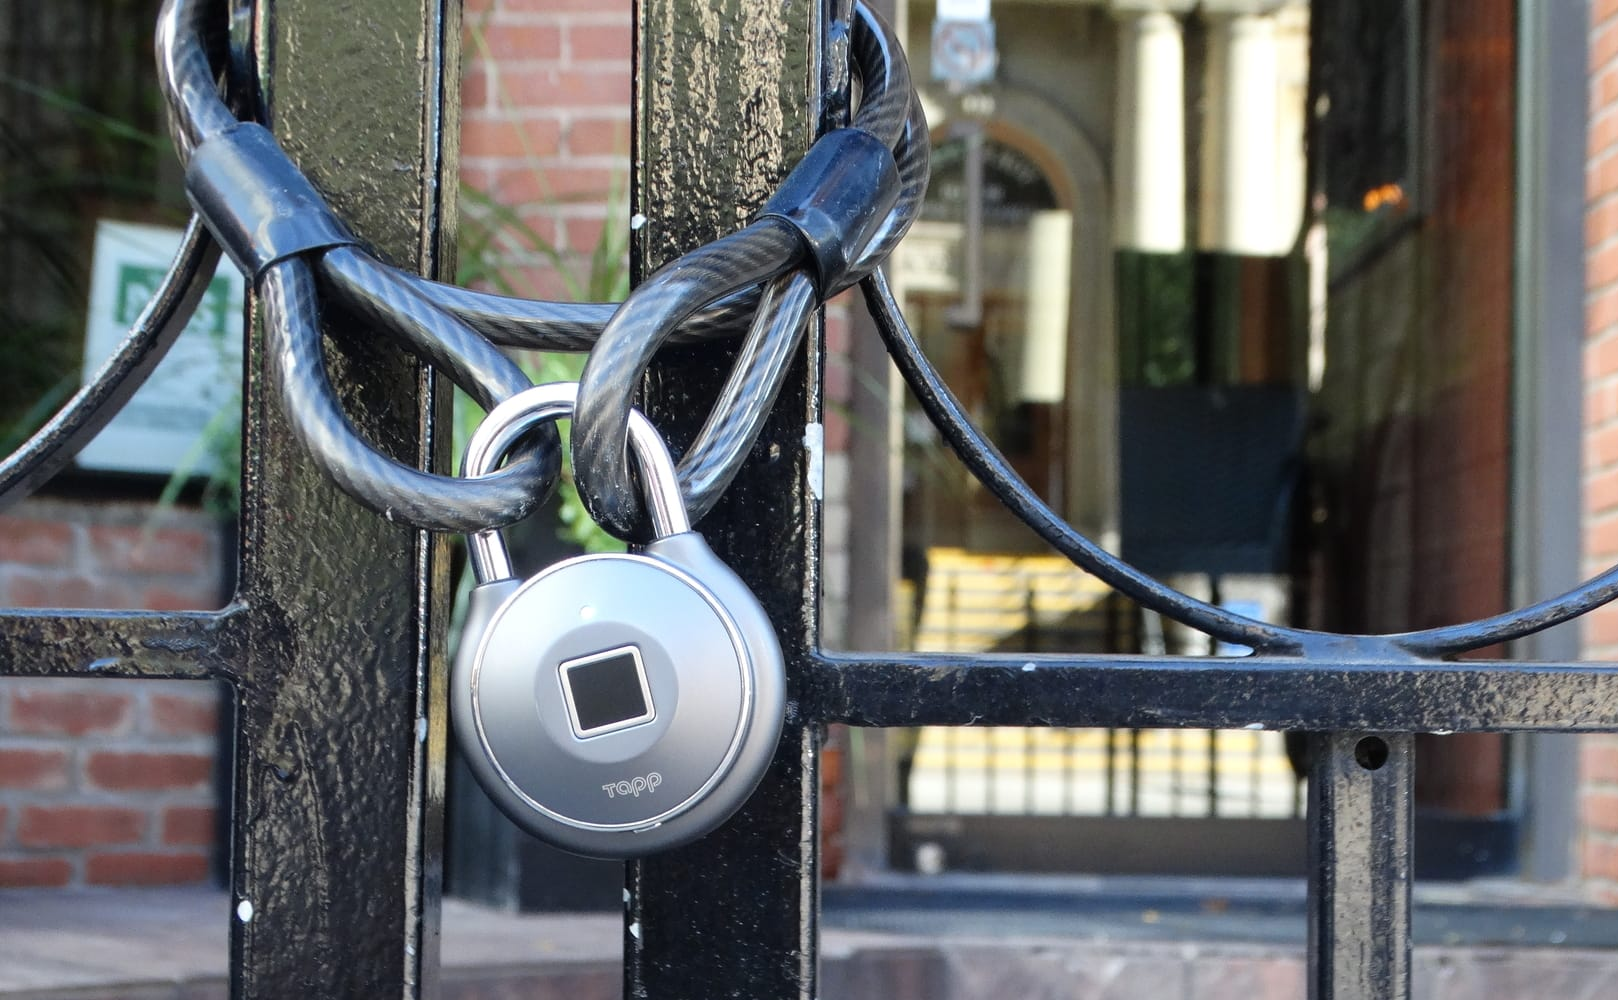 Tapplock Its A Feature Crazy Electrical Wiring Has Responded To Claims That Easy Hack Smart Lock Downfalls By Stating Of The 100 Earlier This Week 3 Major